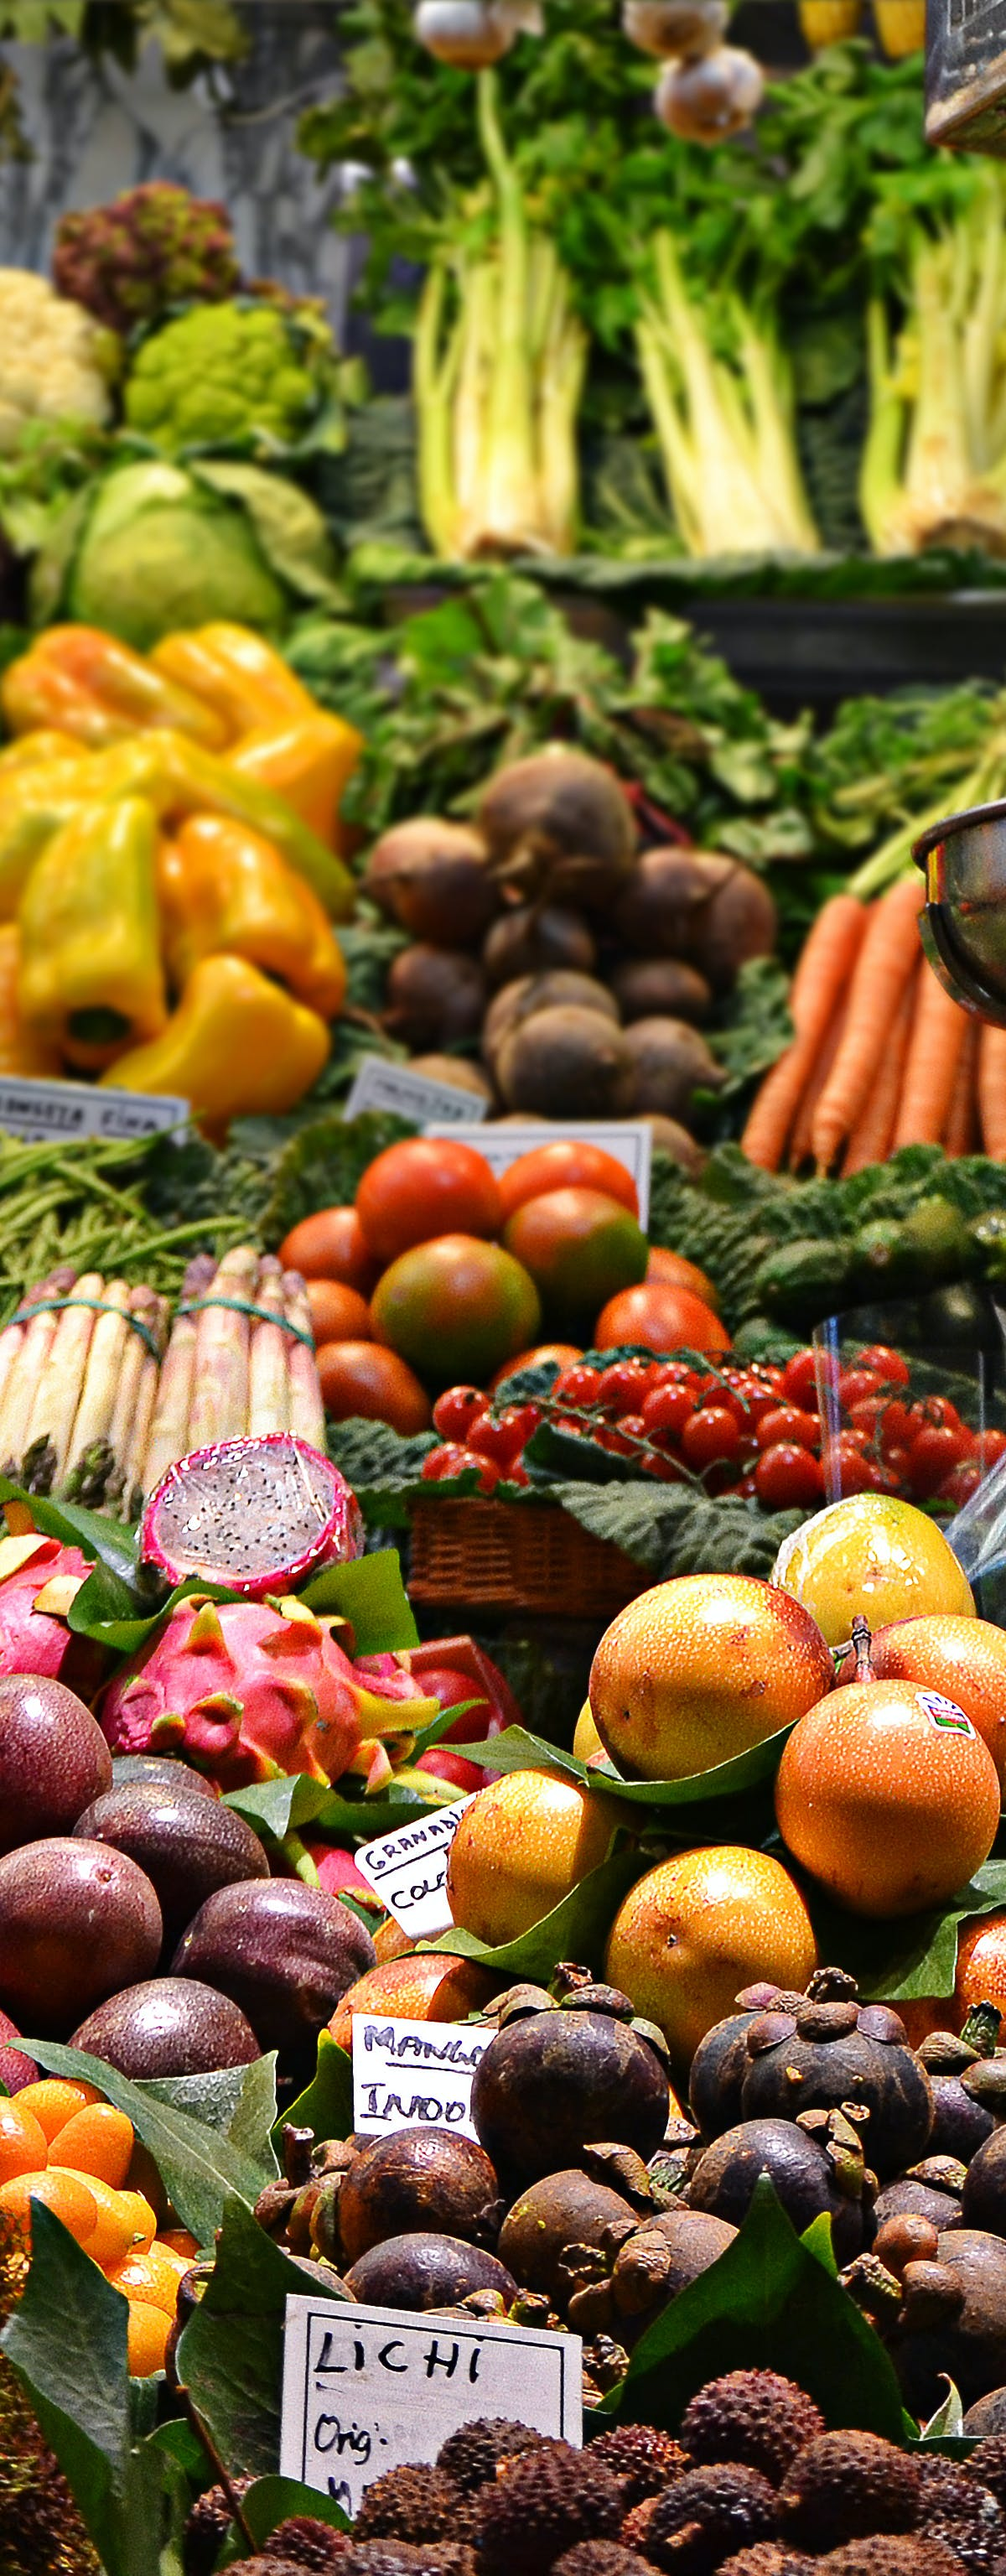 Is It Healthier to Follow a Vegetarian Diet? Here's What Five Experts Said